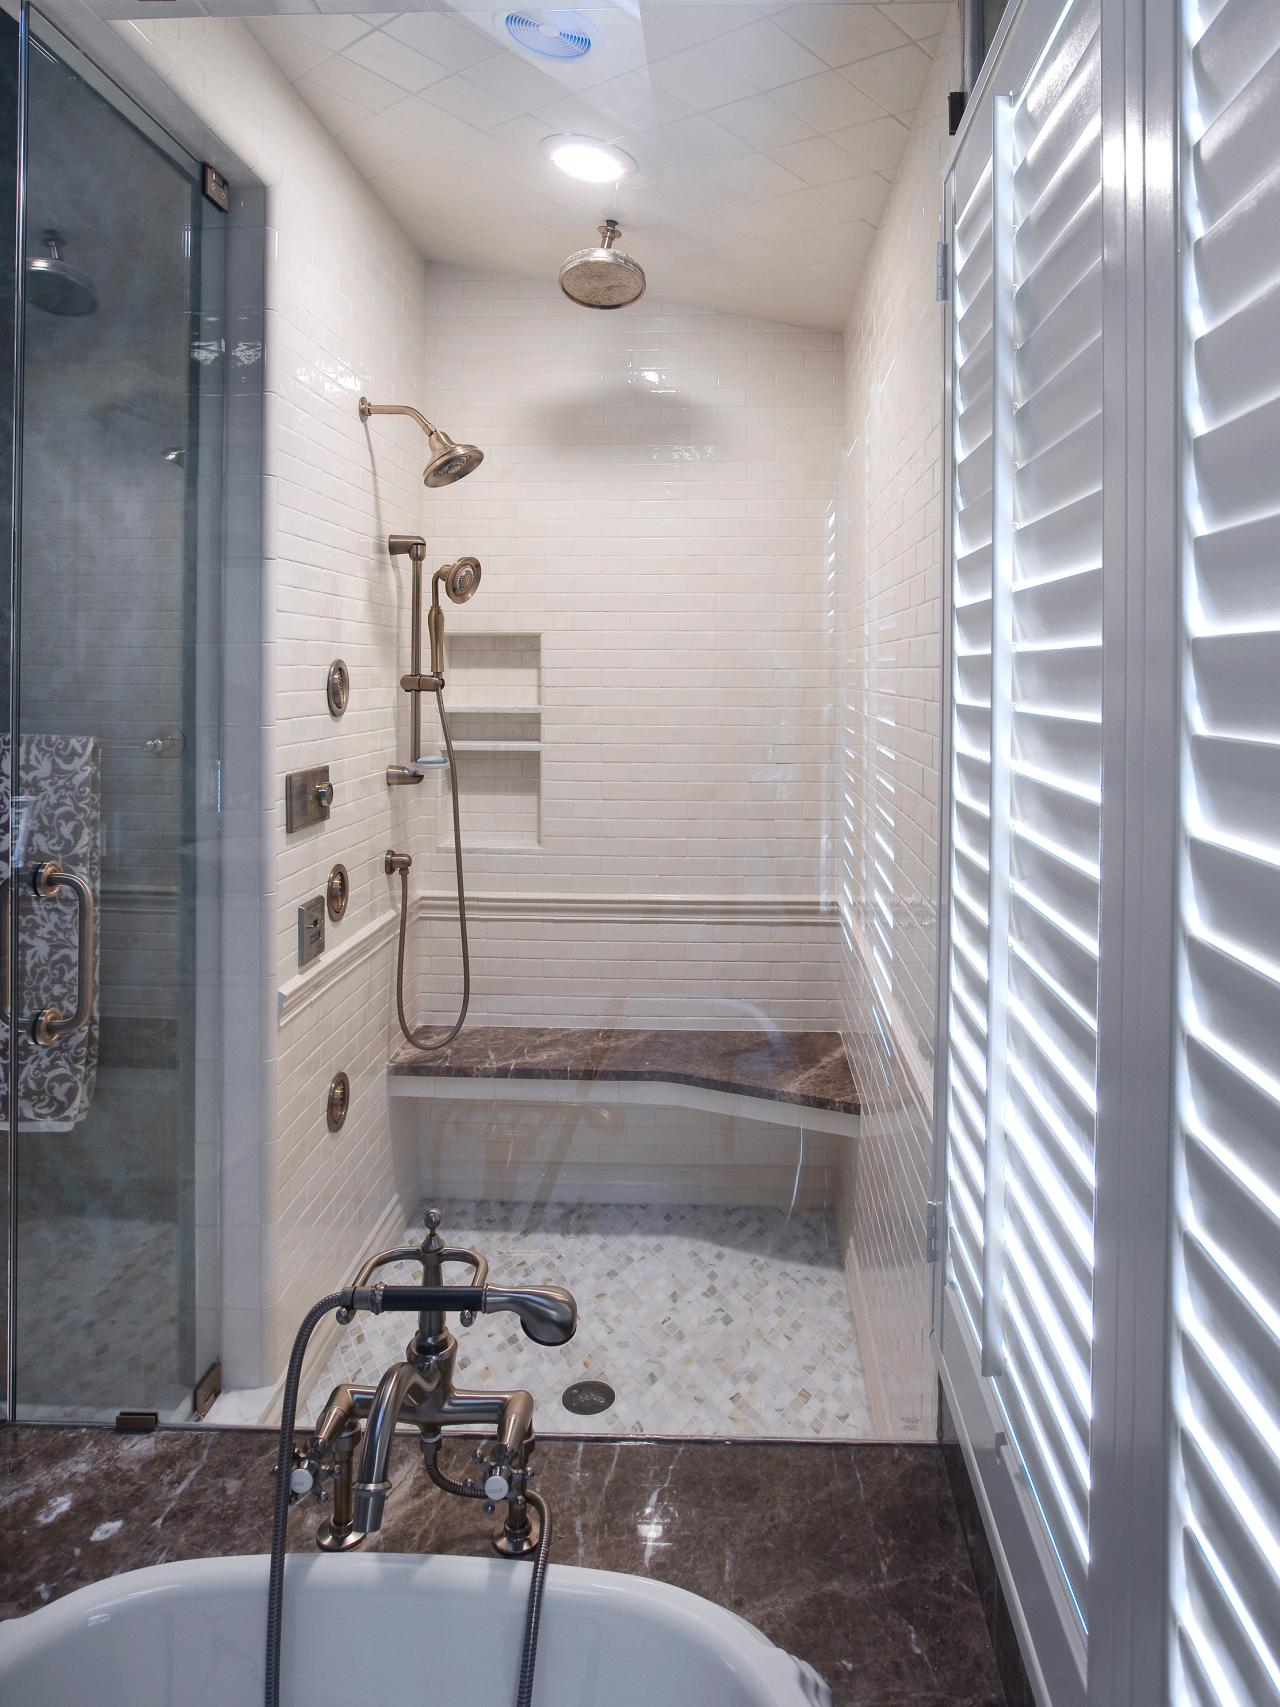 Dreamy tubs and showers bathroom ideas designs hgtv for Bathroom tub and shower designs